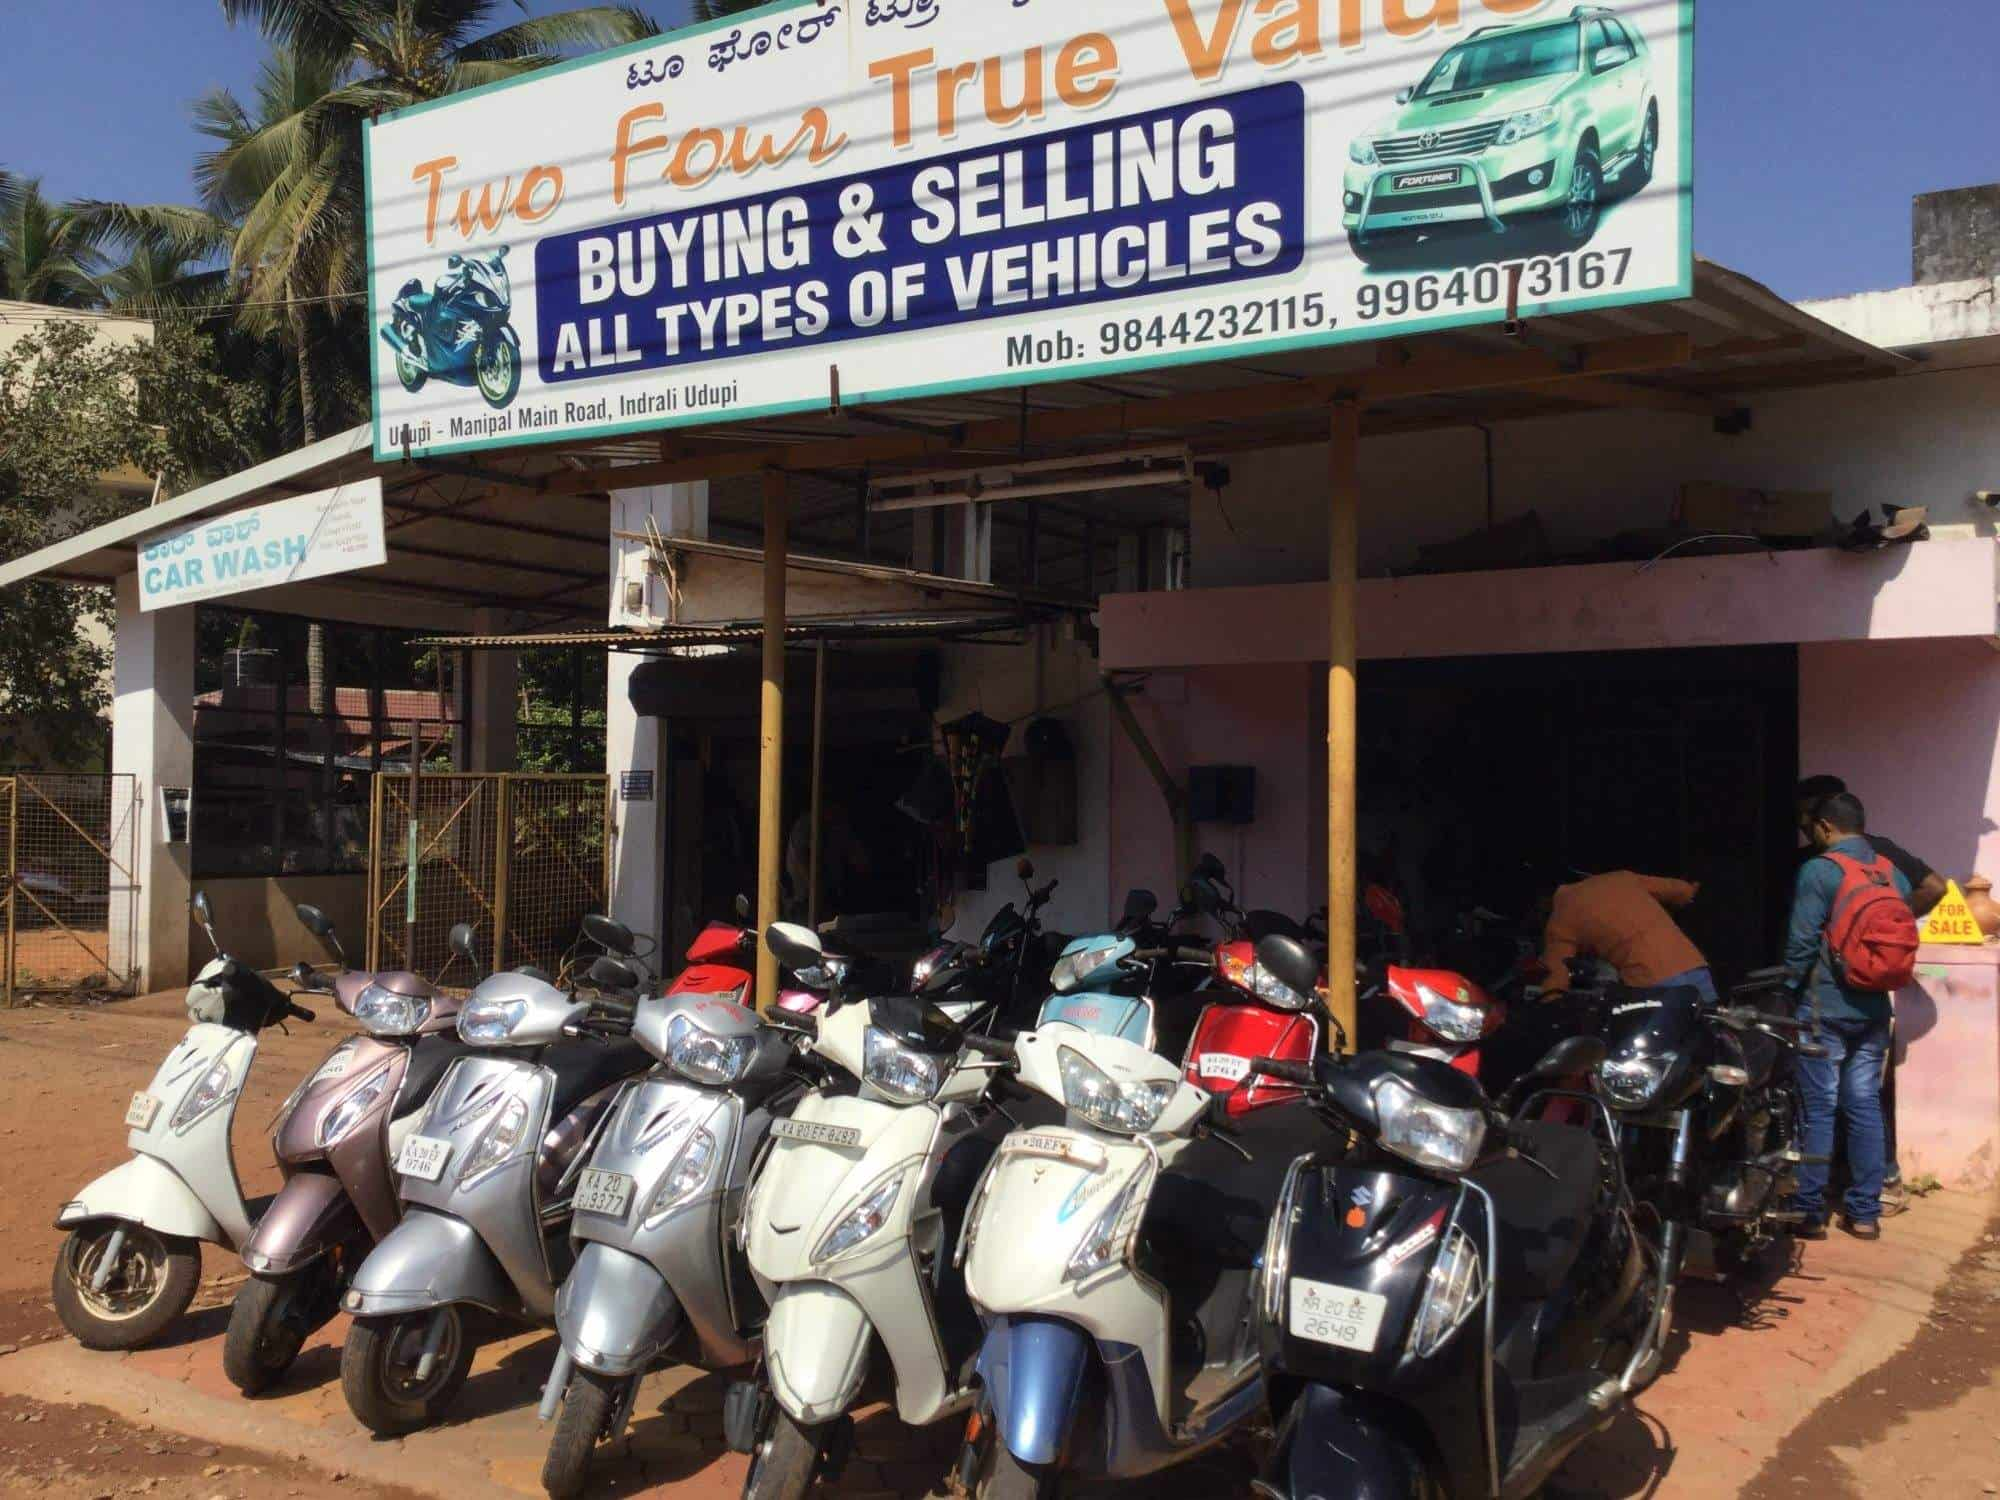 Two for true value Indrali Second Hand Car Dealers in Udupi